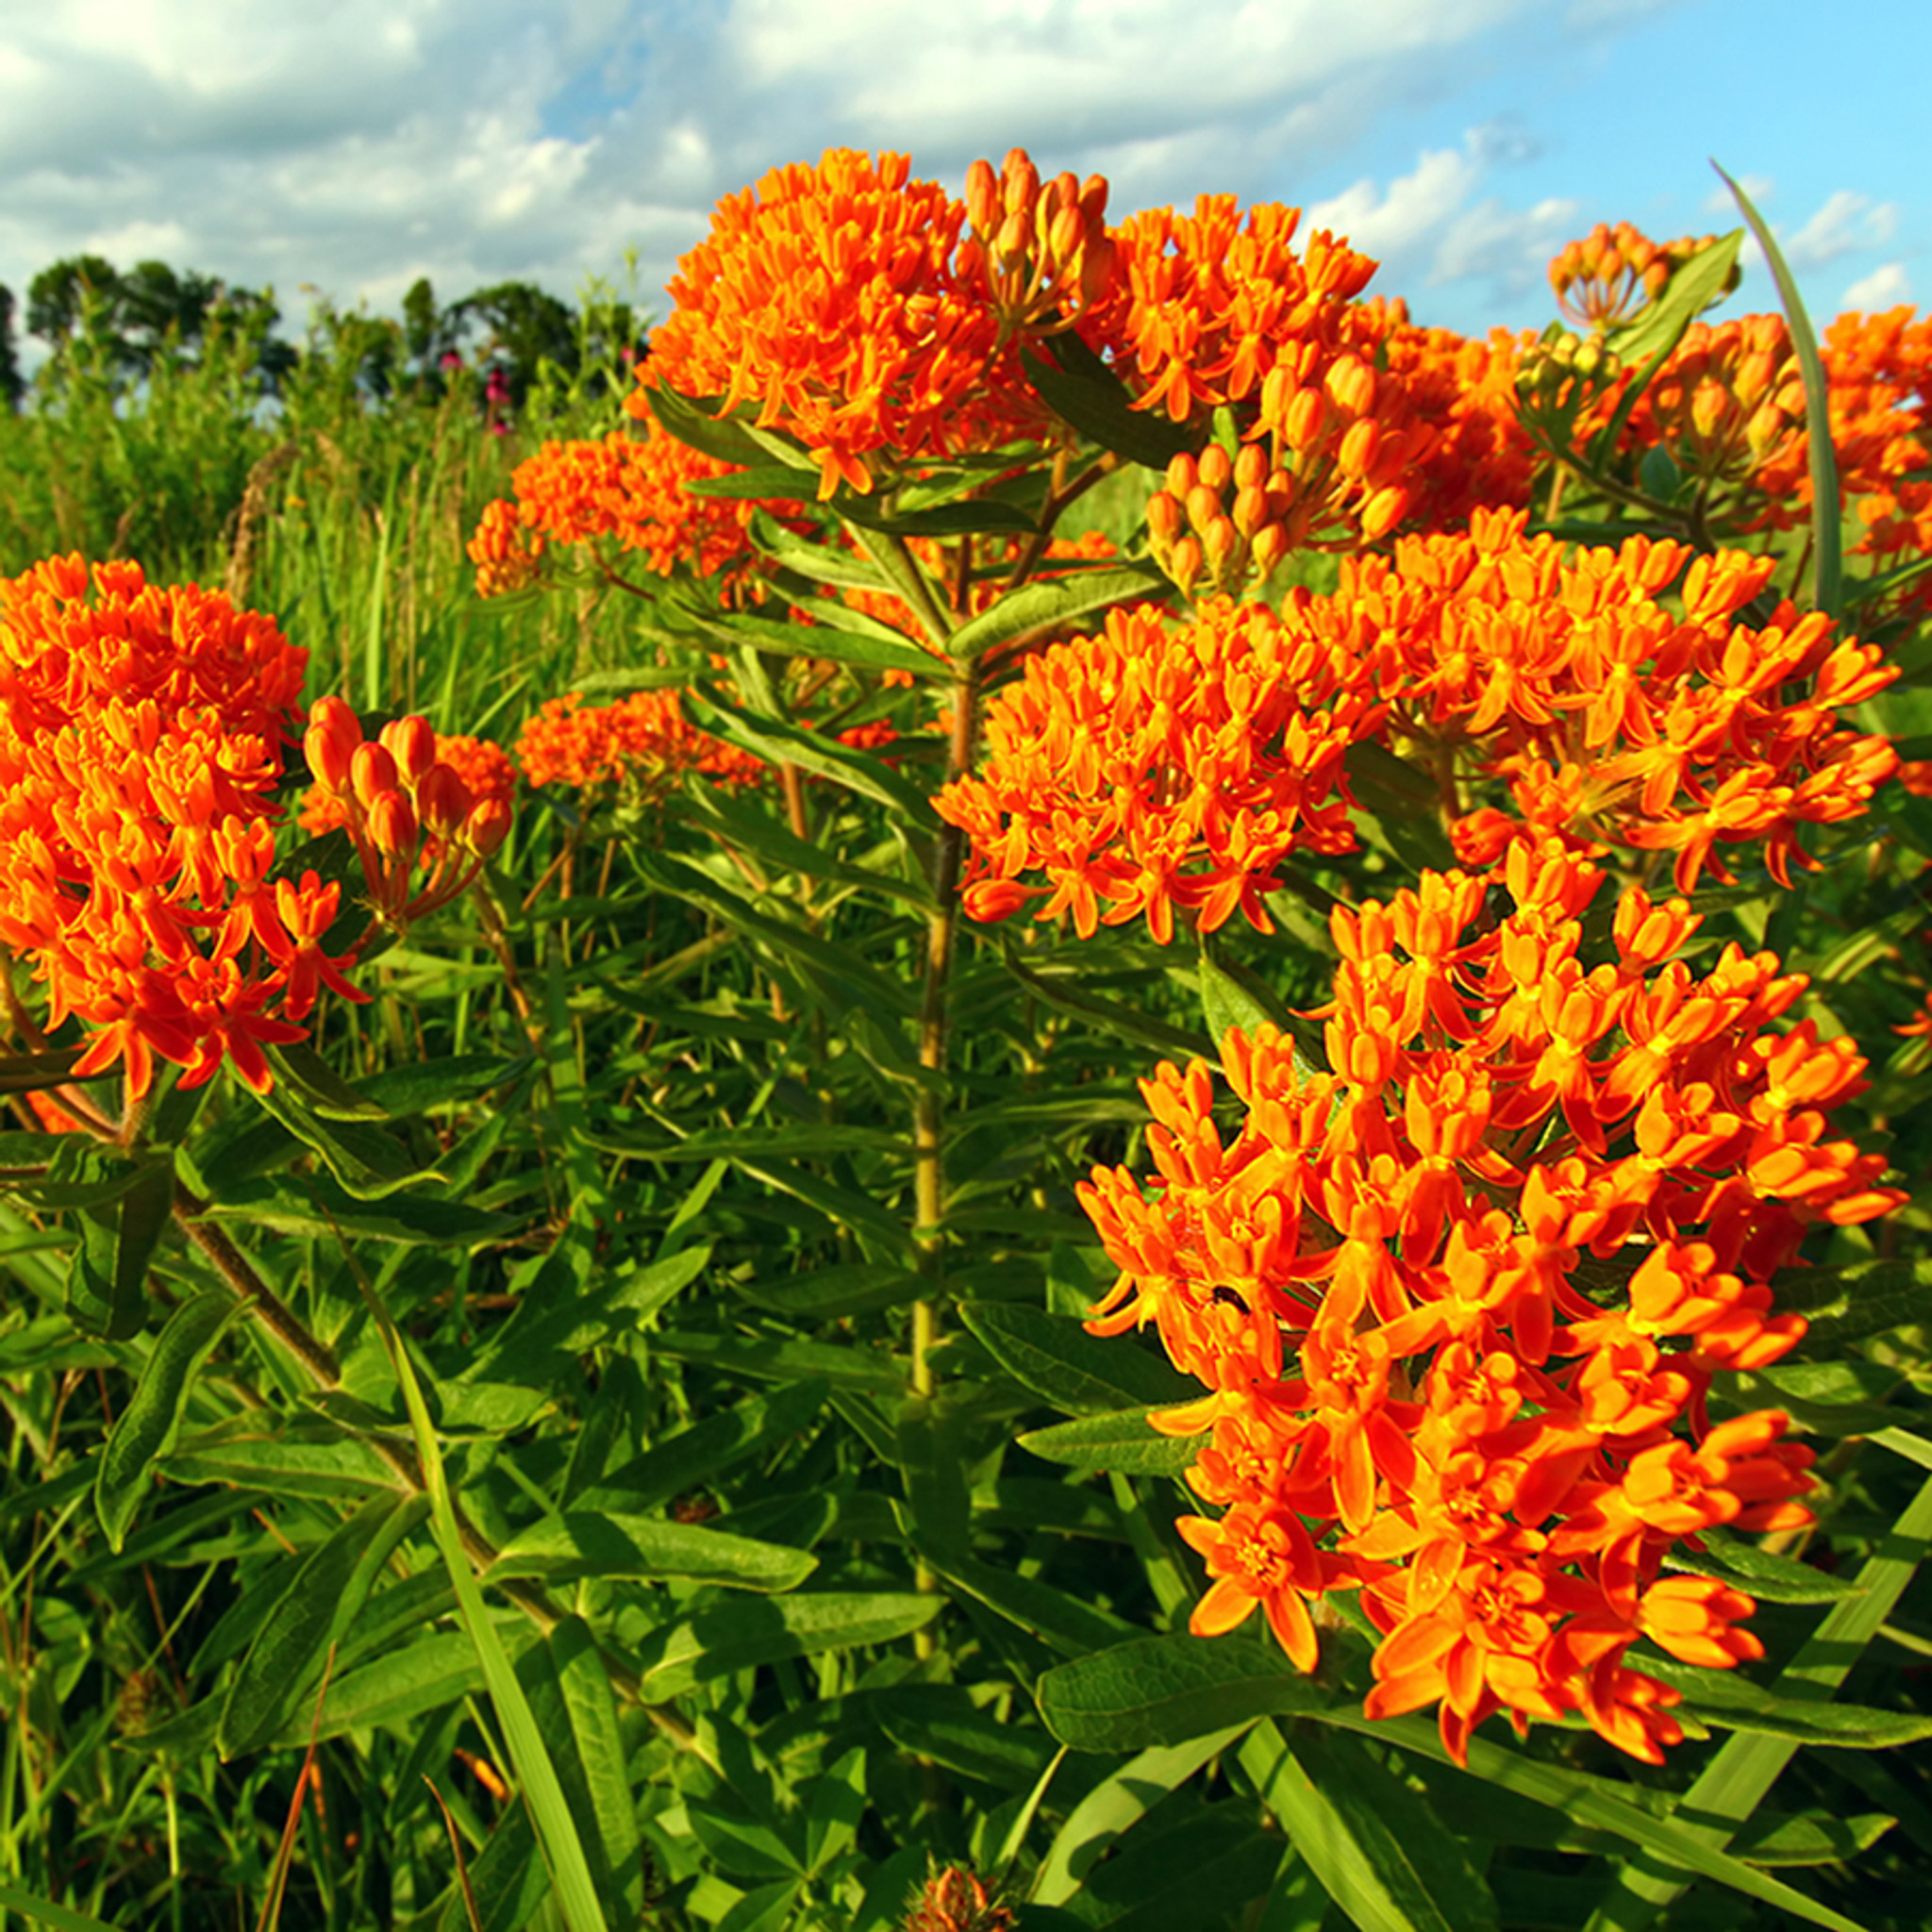 Asclepias tuberosa (72 cells) liners from Emerald Coast Growers